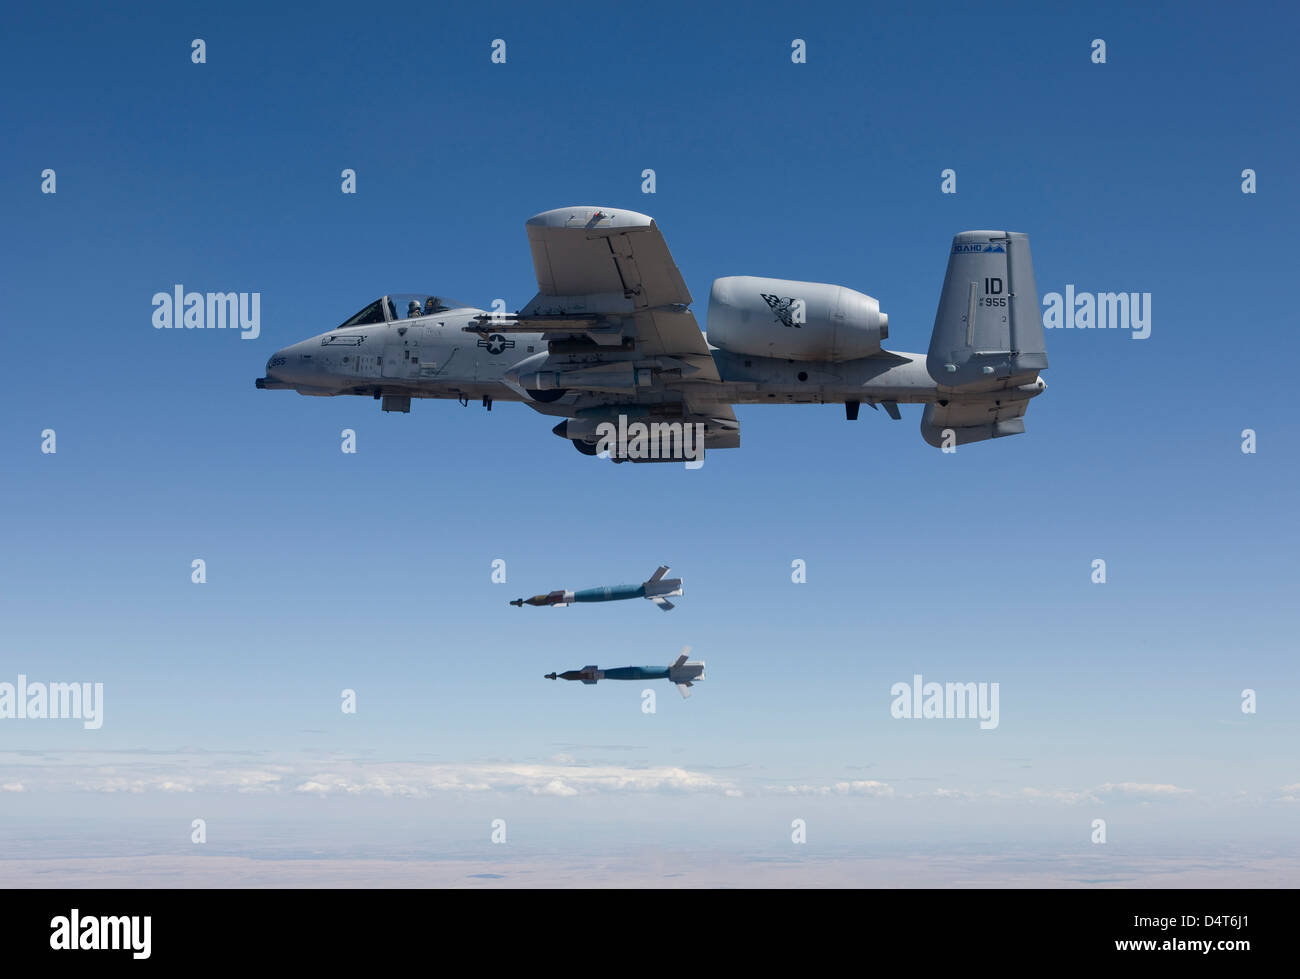 An A-10C Thunderbolt releases two GBU-12 laser guided bombs. - Stock Image